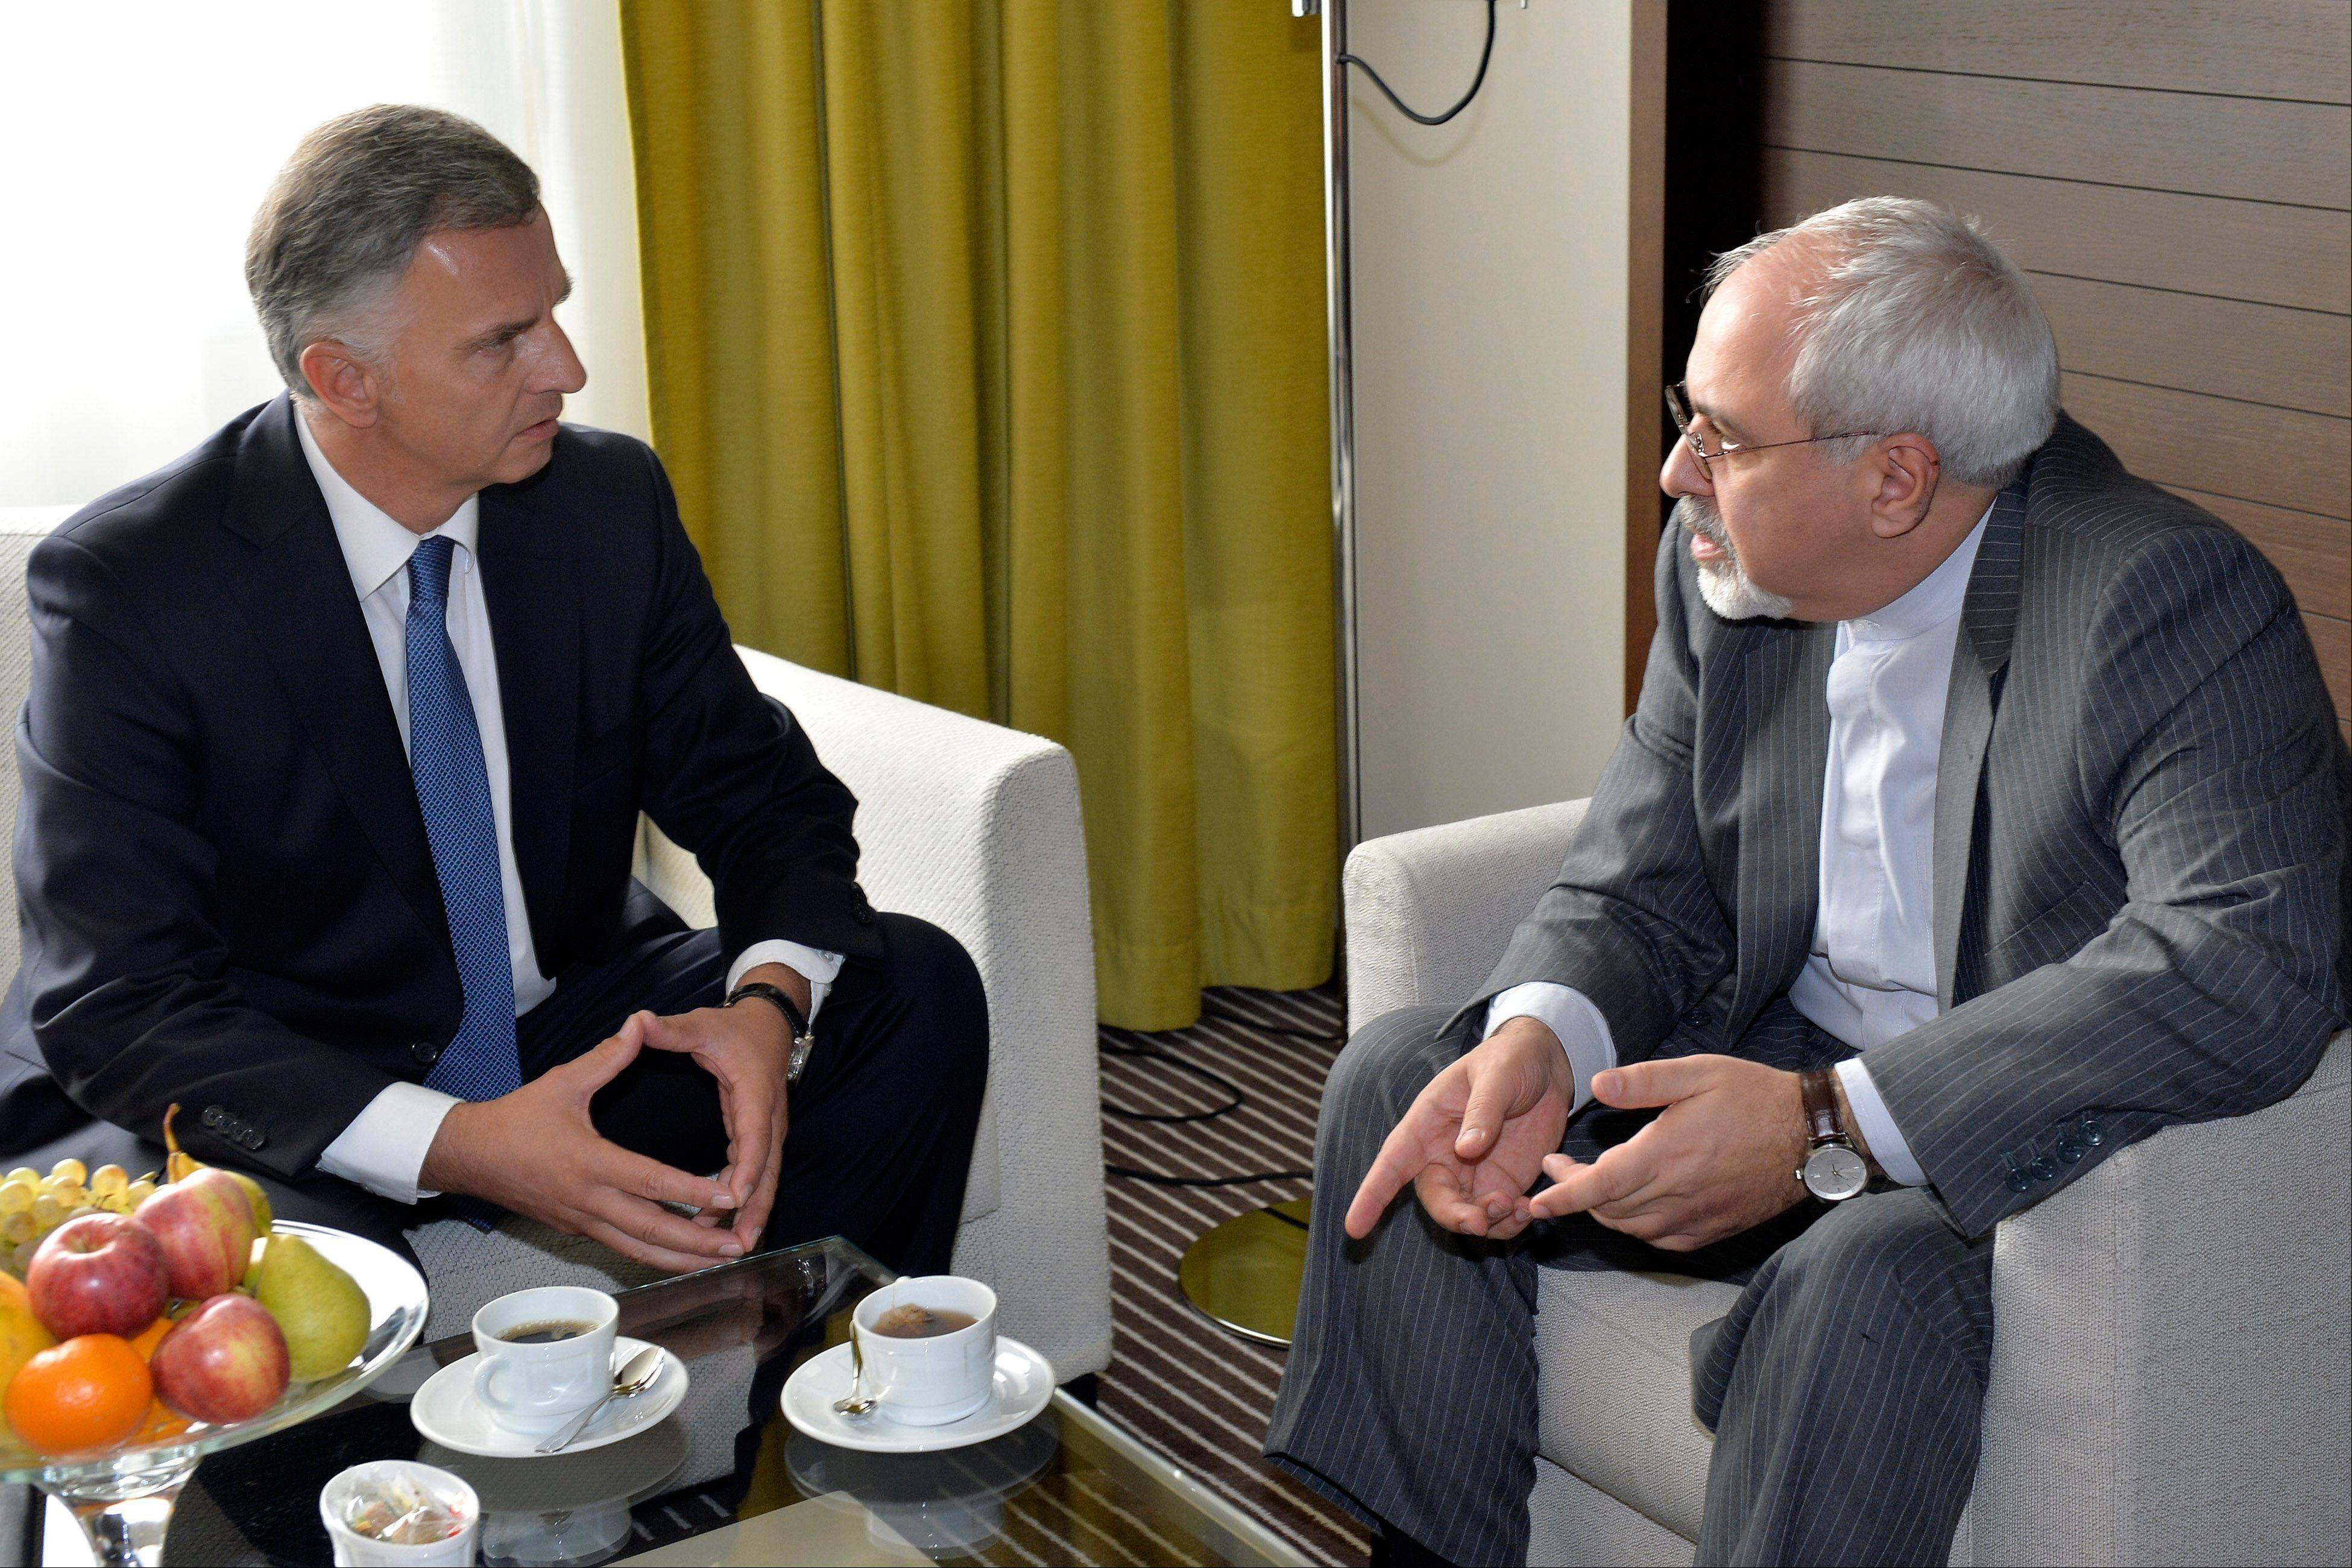 Switzerland�s Foreign Minister Didier Burkhalter, left, speaks with Iranian Foreign Minister Mohammad Javad Zarif, right, during a meeting besides of the two days of closed-door nuclear talks in Geneva, Switzerland, Wednesday.